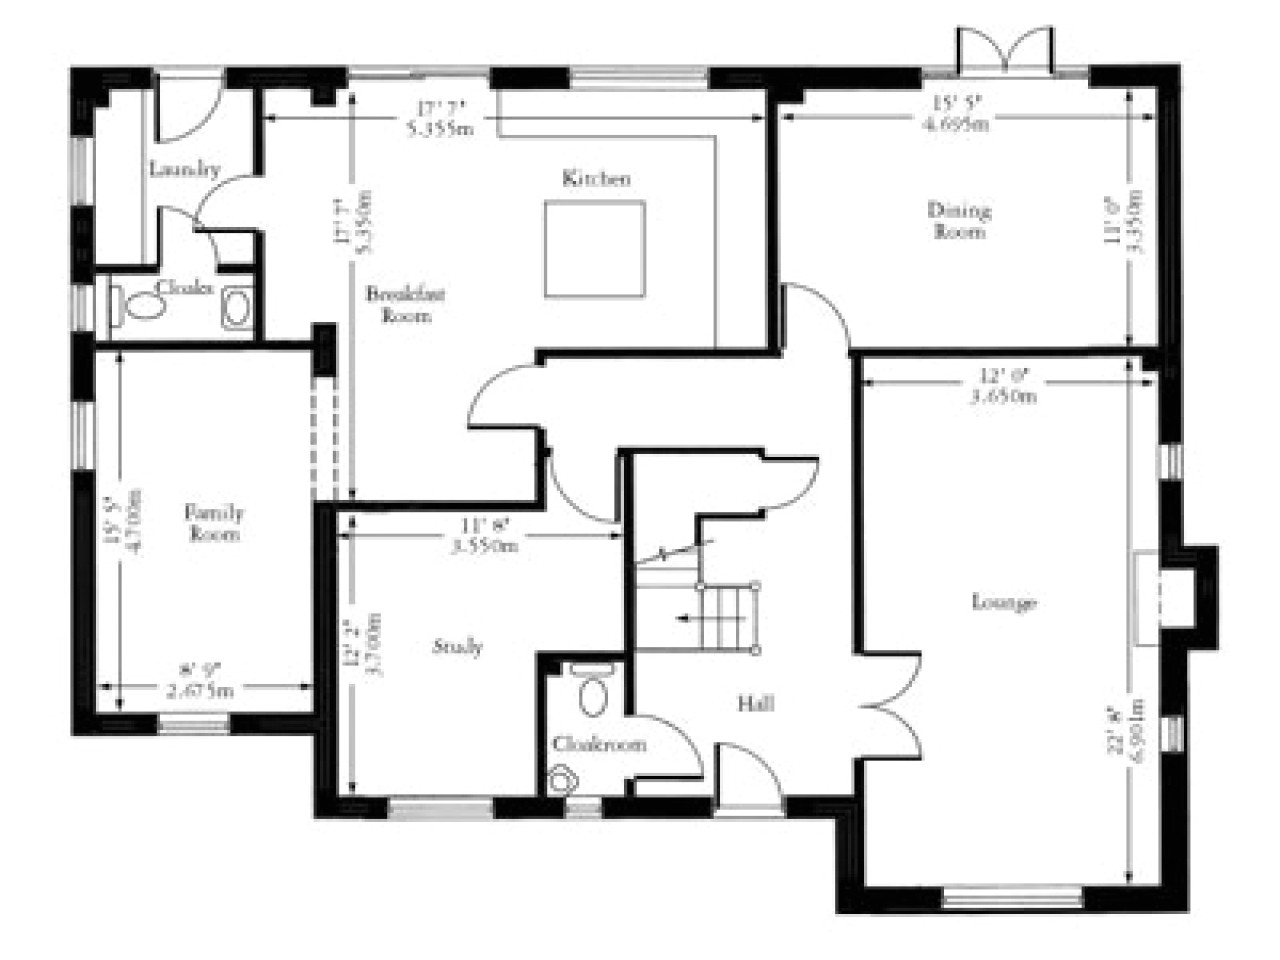 a1b618b709cc6e98 house floor plans with dimensions house floor plans with indoor pool